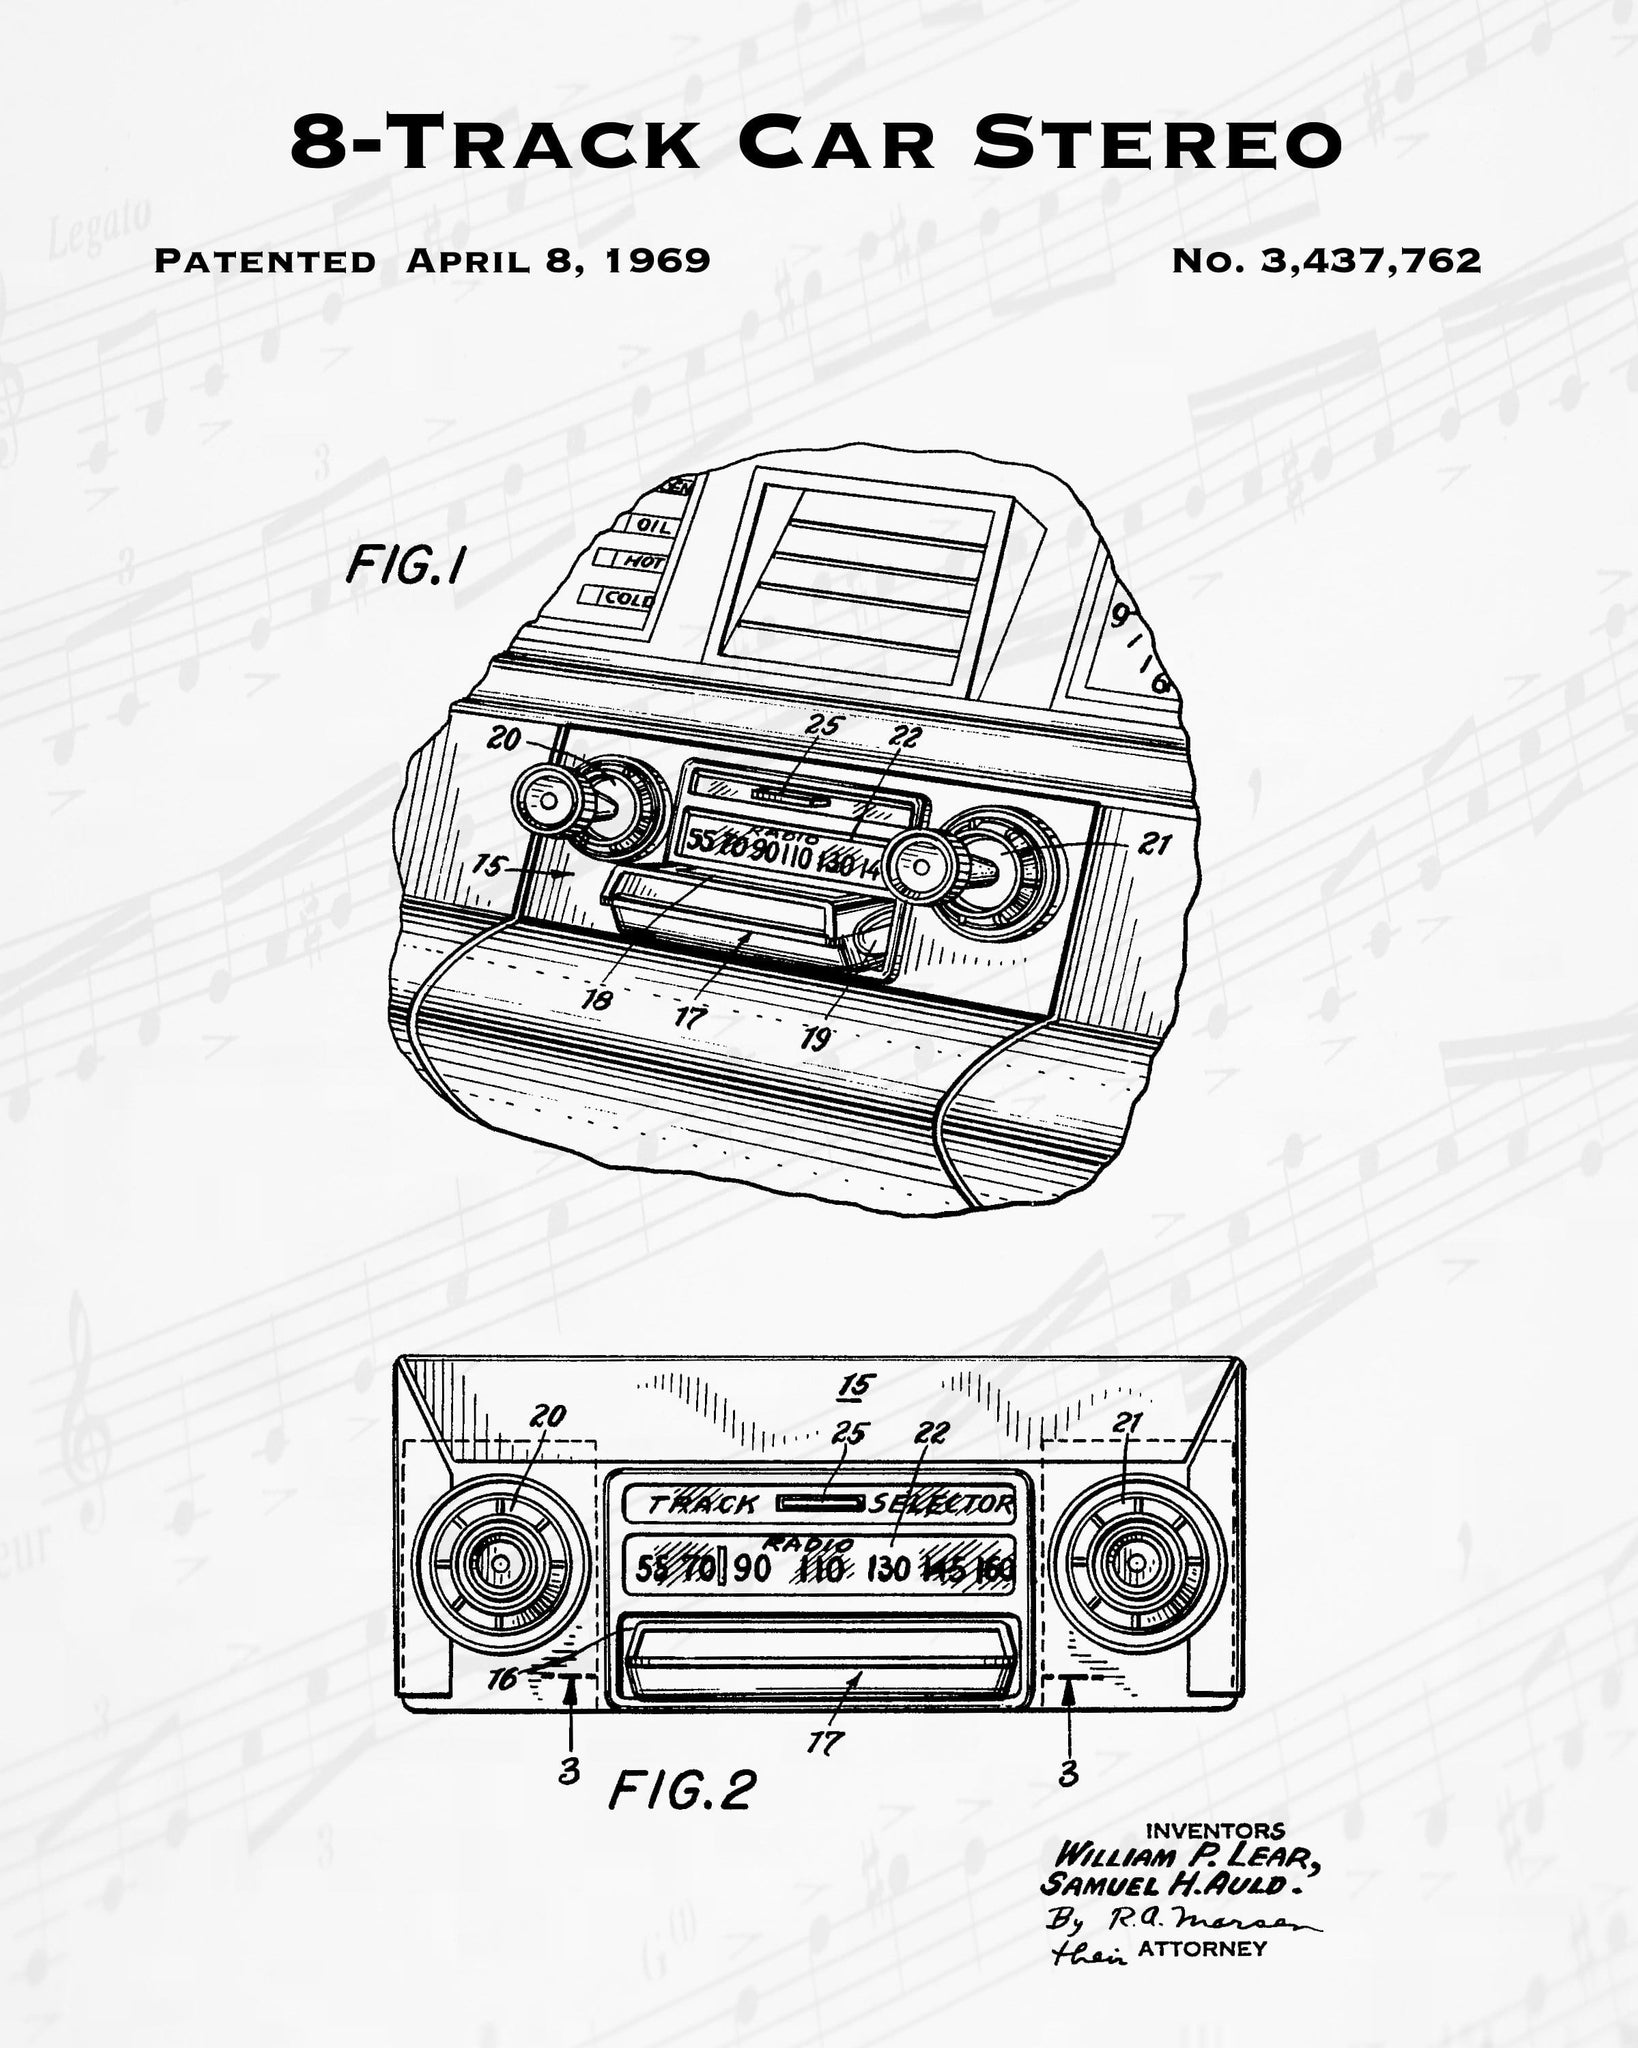 1969 8-Track Car Stereo Patent - 8X10 Digital Download Patent